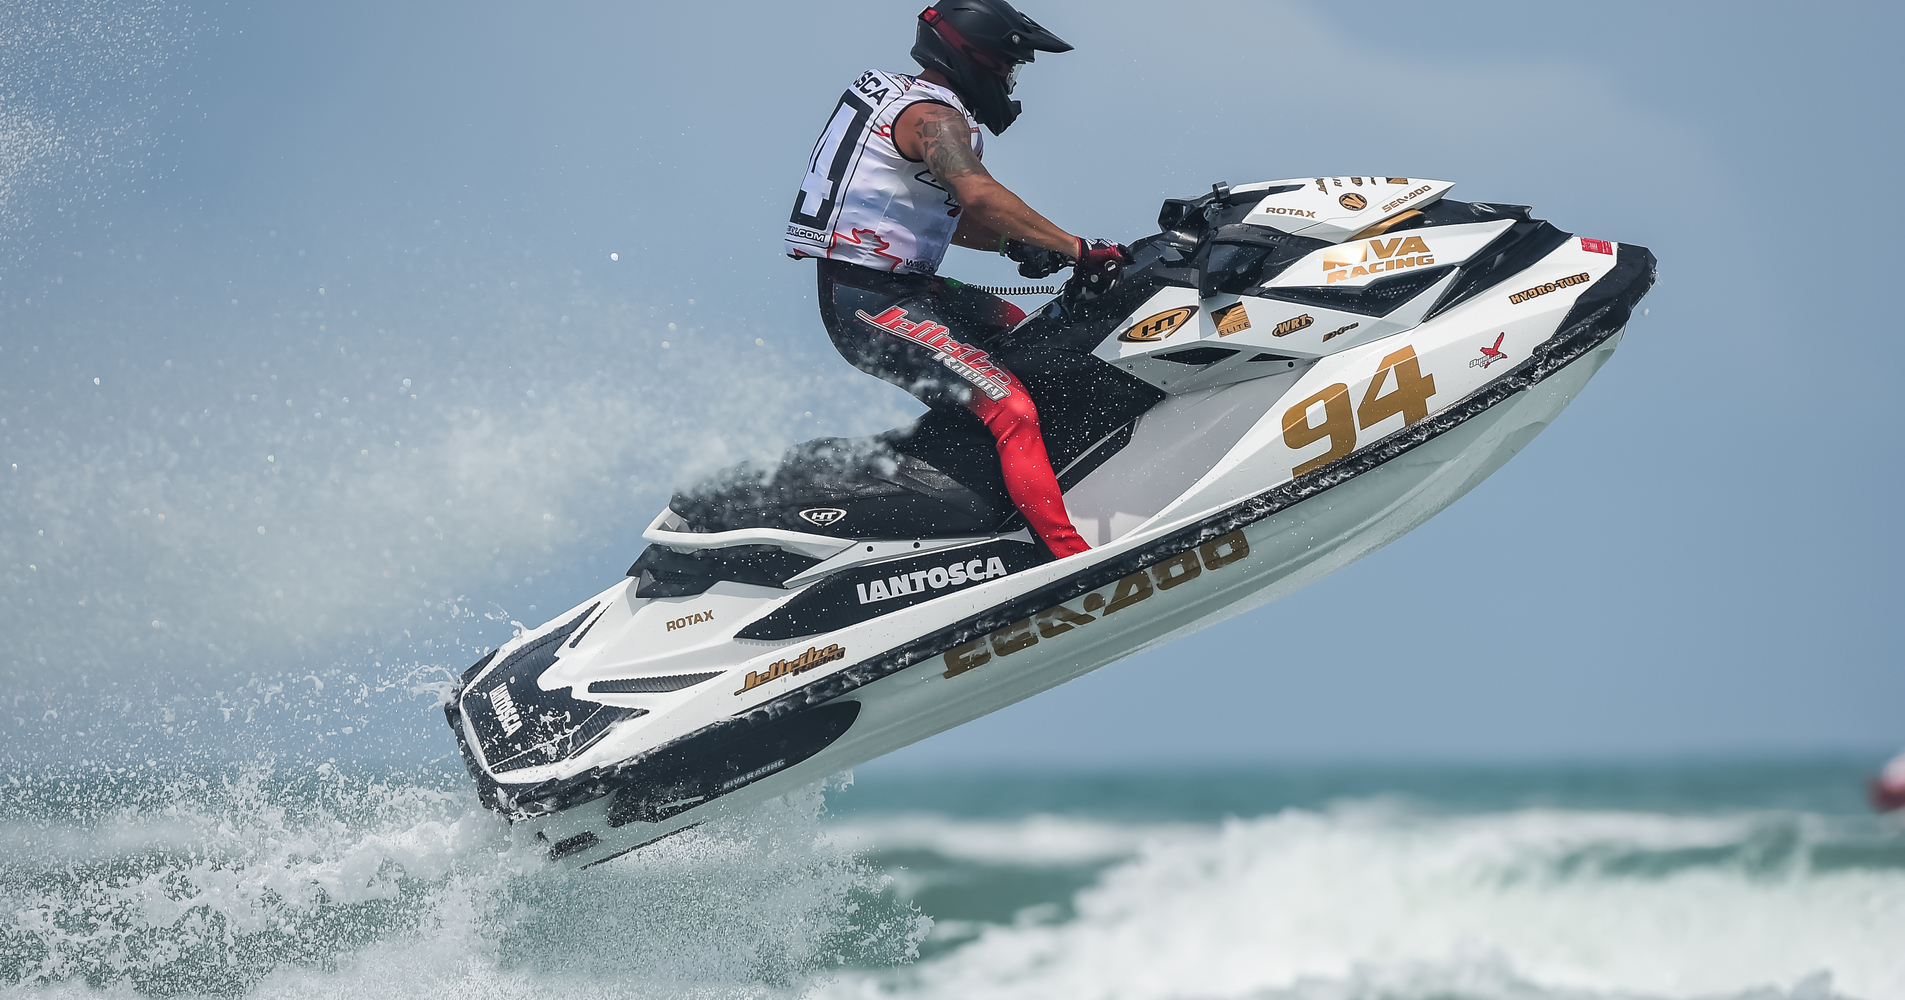 Erminio Iantosca had a brilliant weekend and finished amongst the top Yamaha riders aboard his Sea-Doo